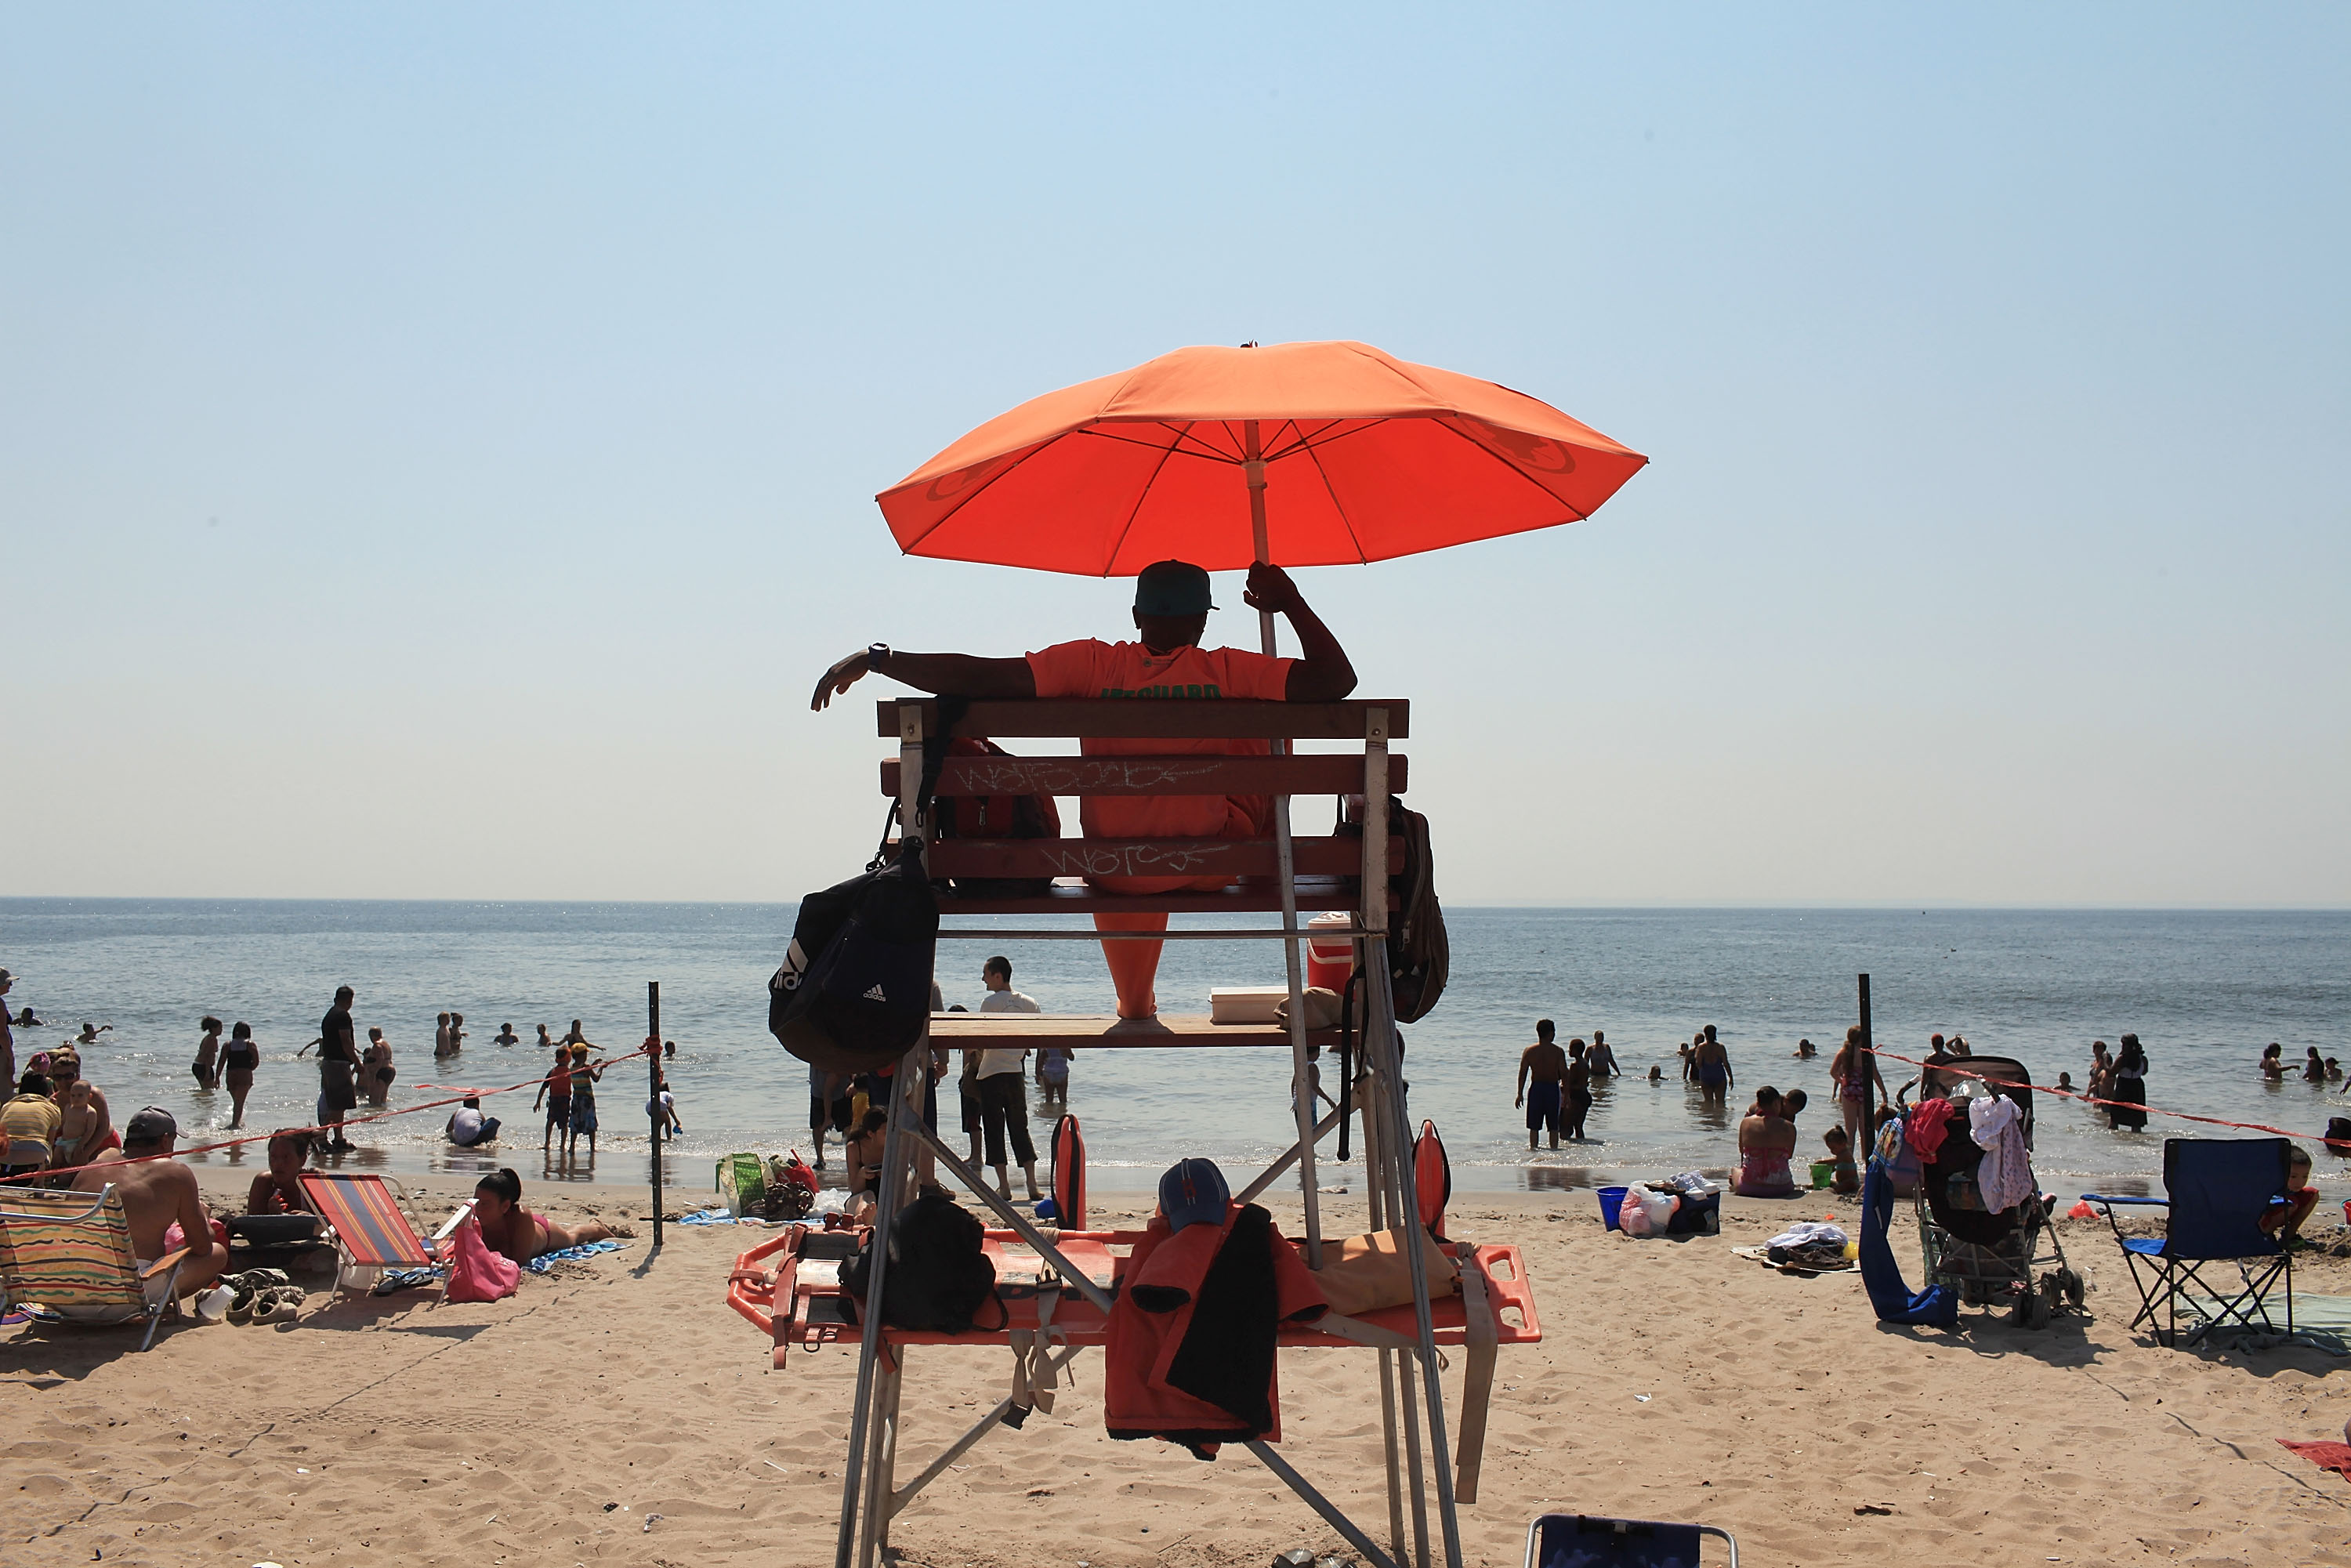 A life guard watches swimmers on a hot afternoon at Coney Island on Aug. 31, 2010 in New York City.